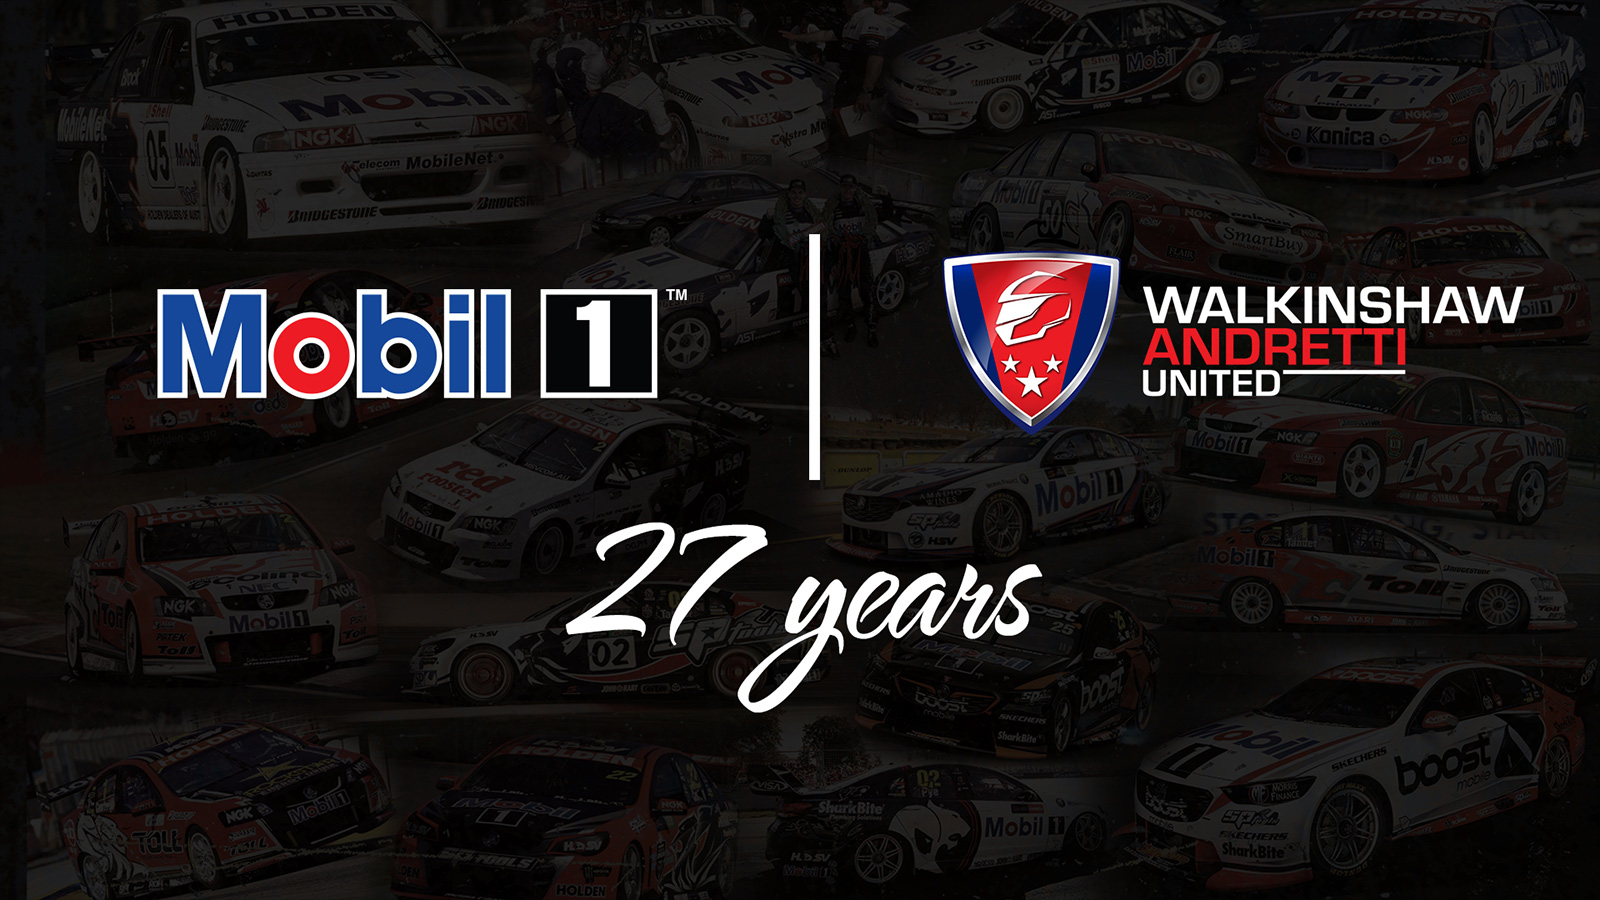 Mobil 1 and WAU Team Up for 27th Year